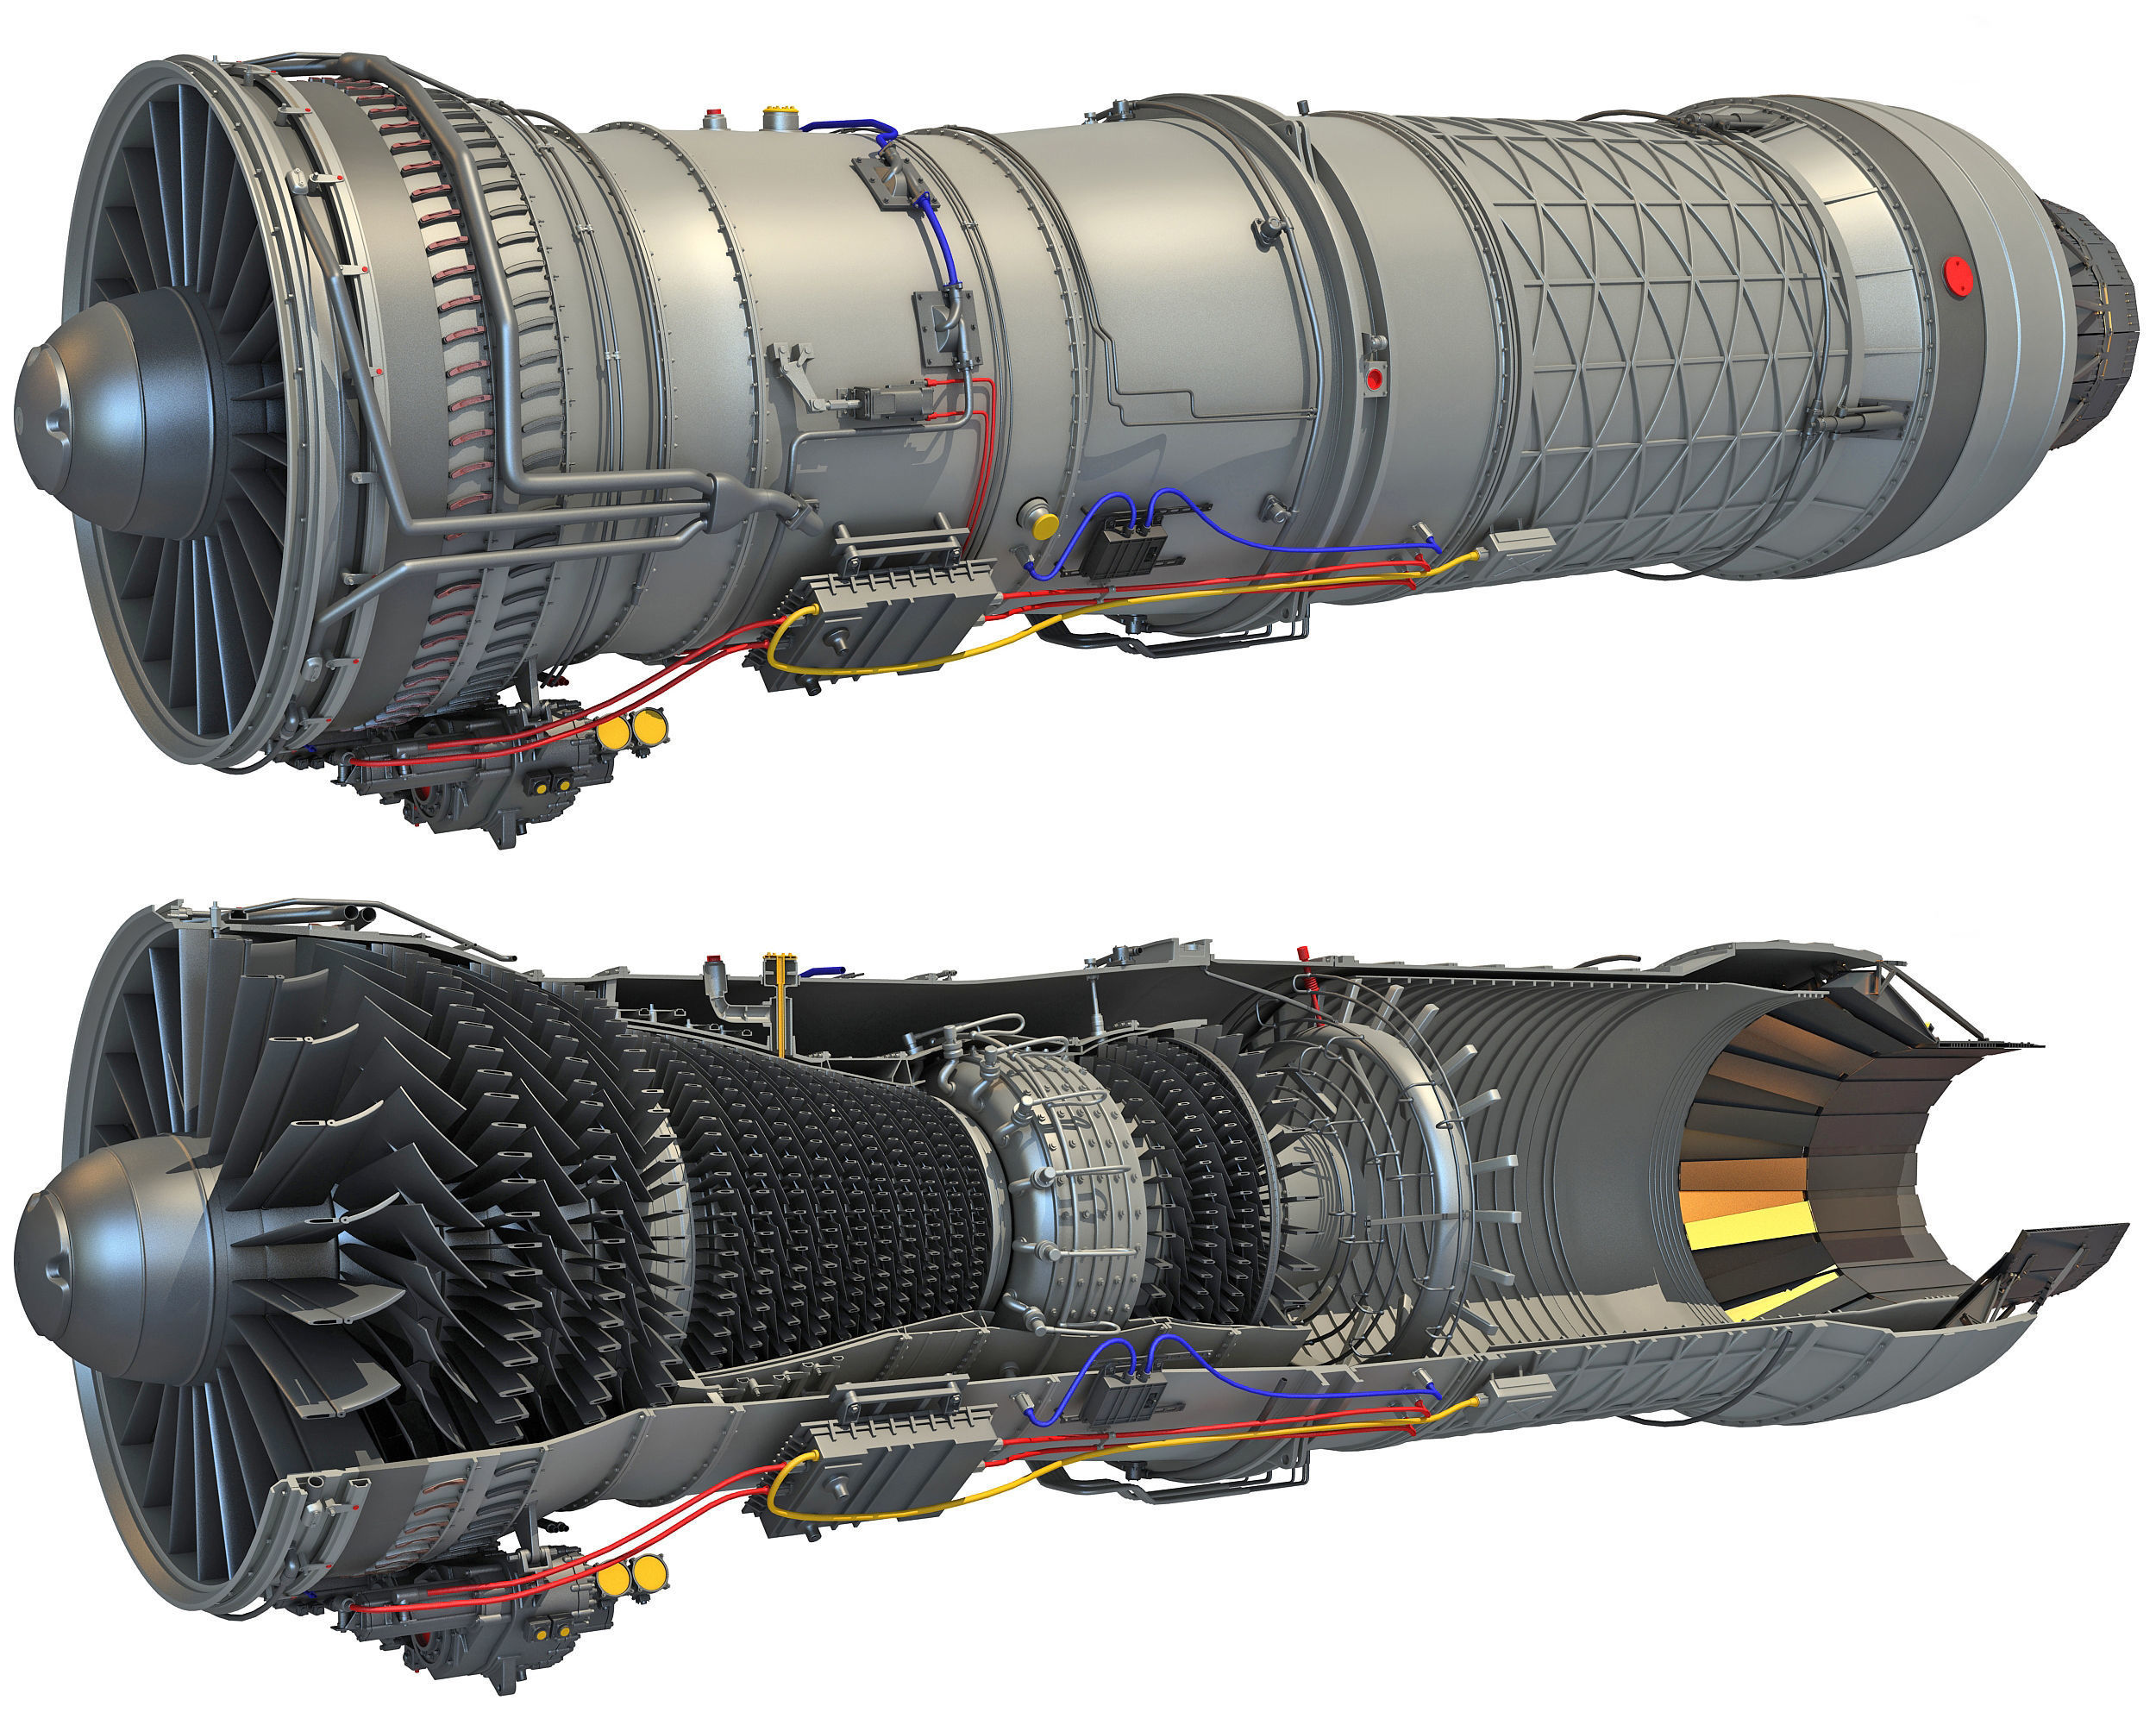 Complete and Sectioned Afterburning Turbofan Engine